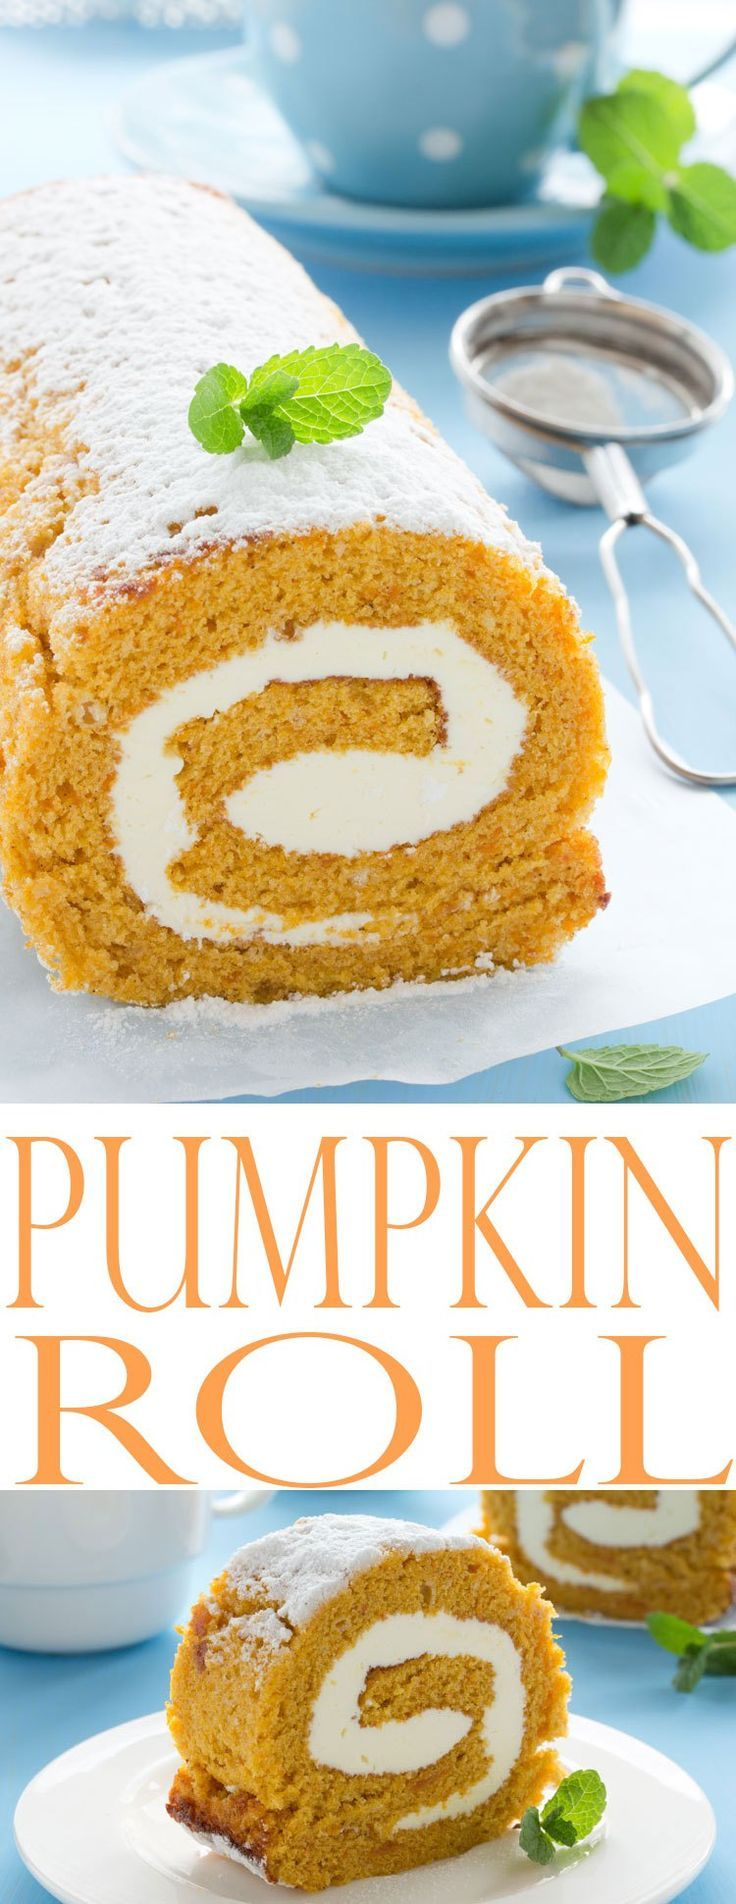 Pumpkin Roll recipe is a classic fall cake recipe that looks just as gorgeous as it tastes. Pumpkin recipes for fall baking are here!